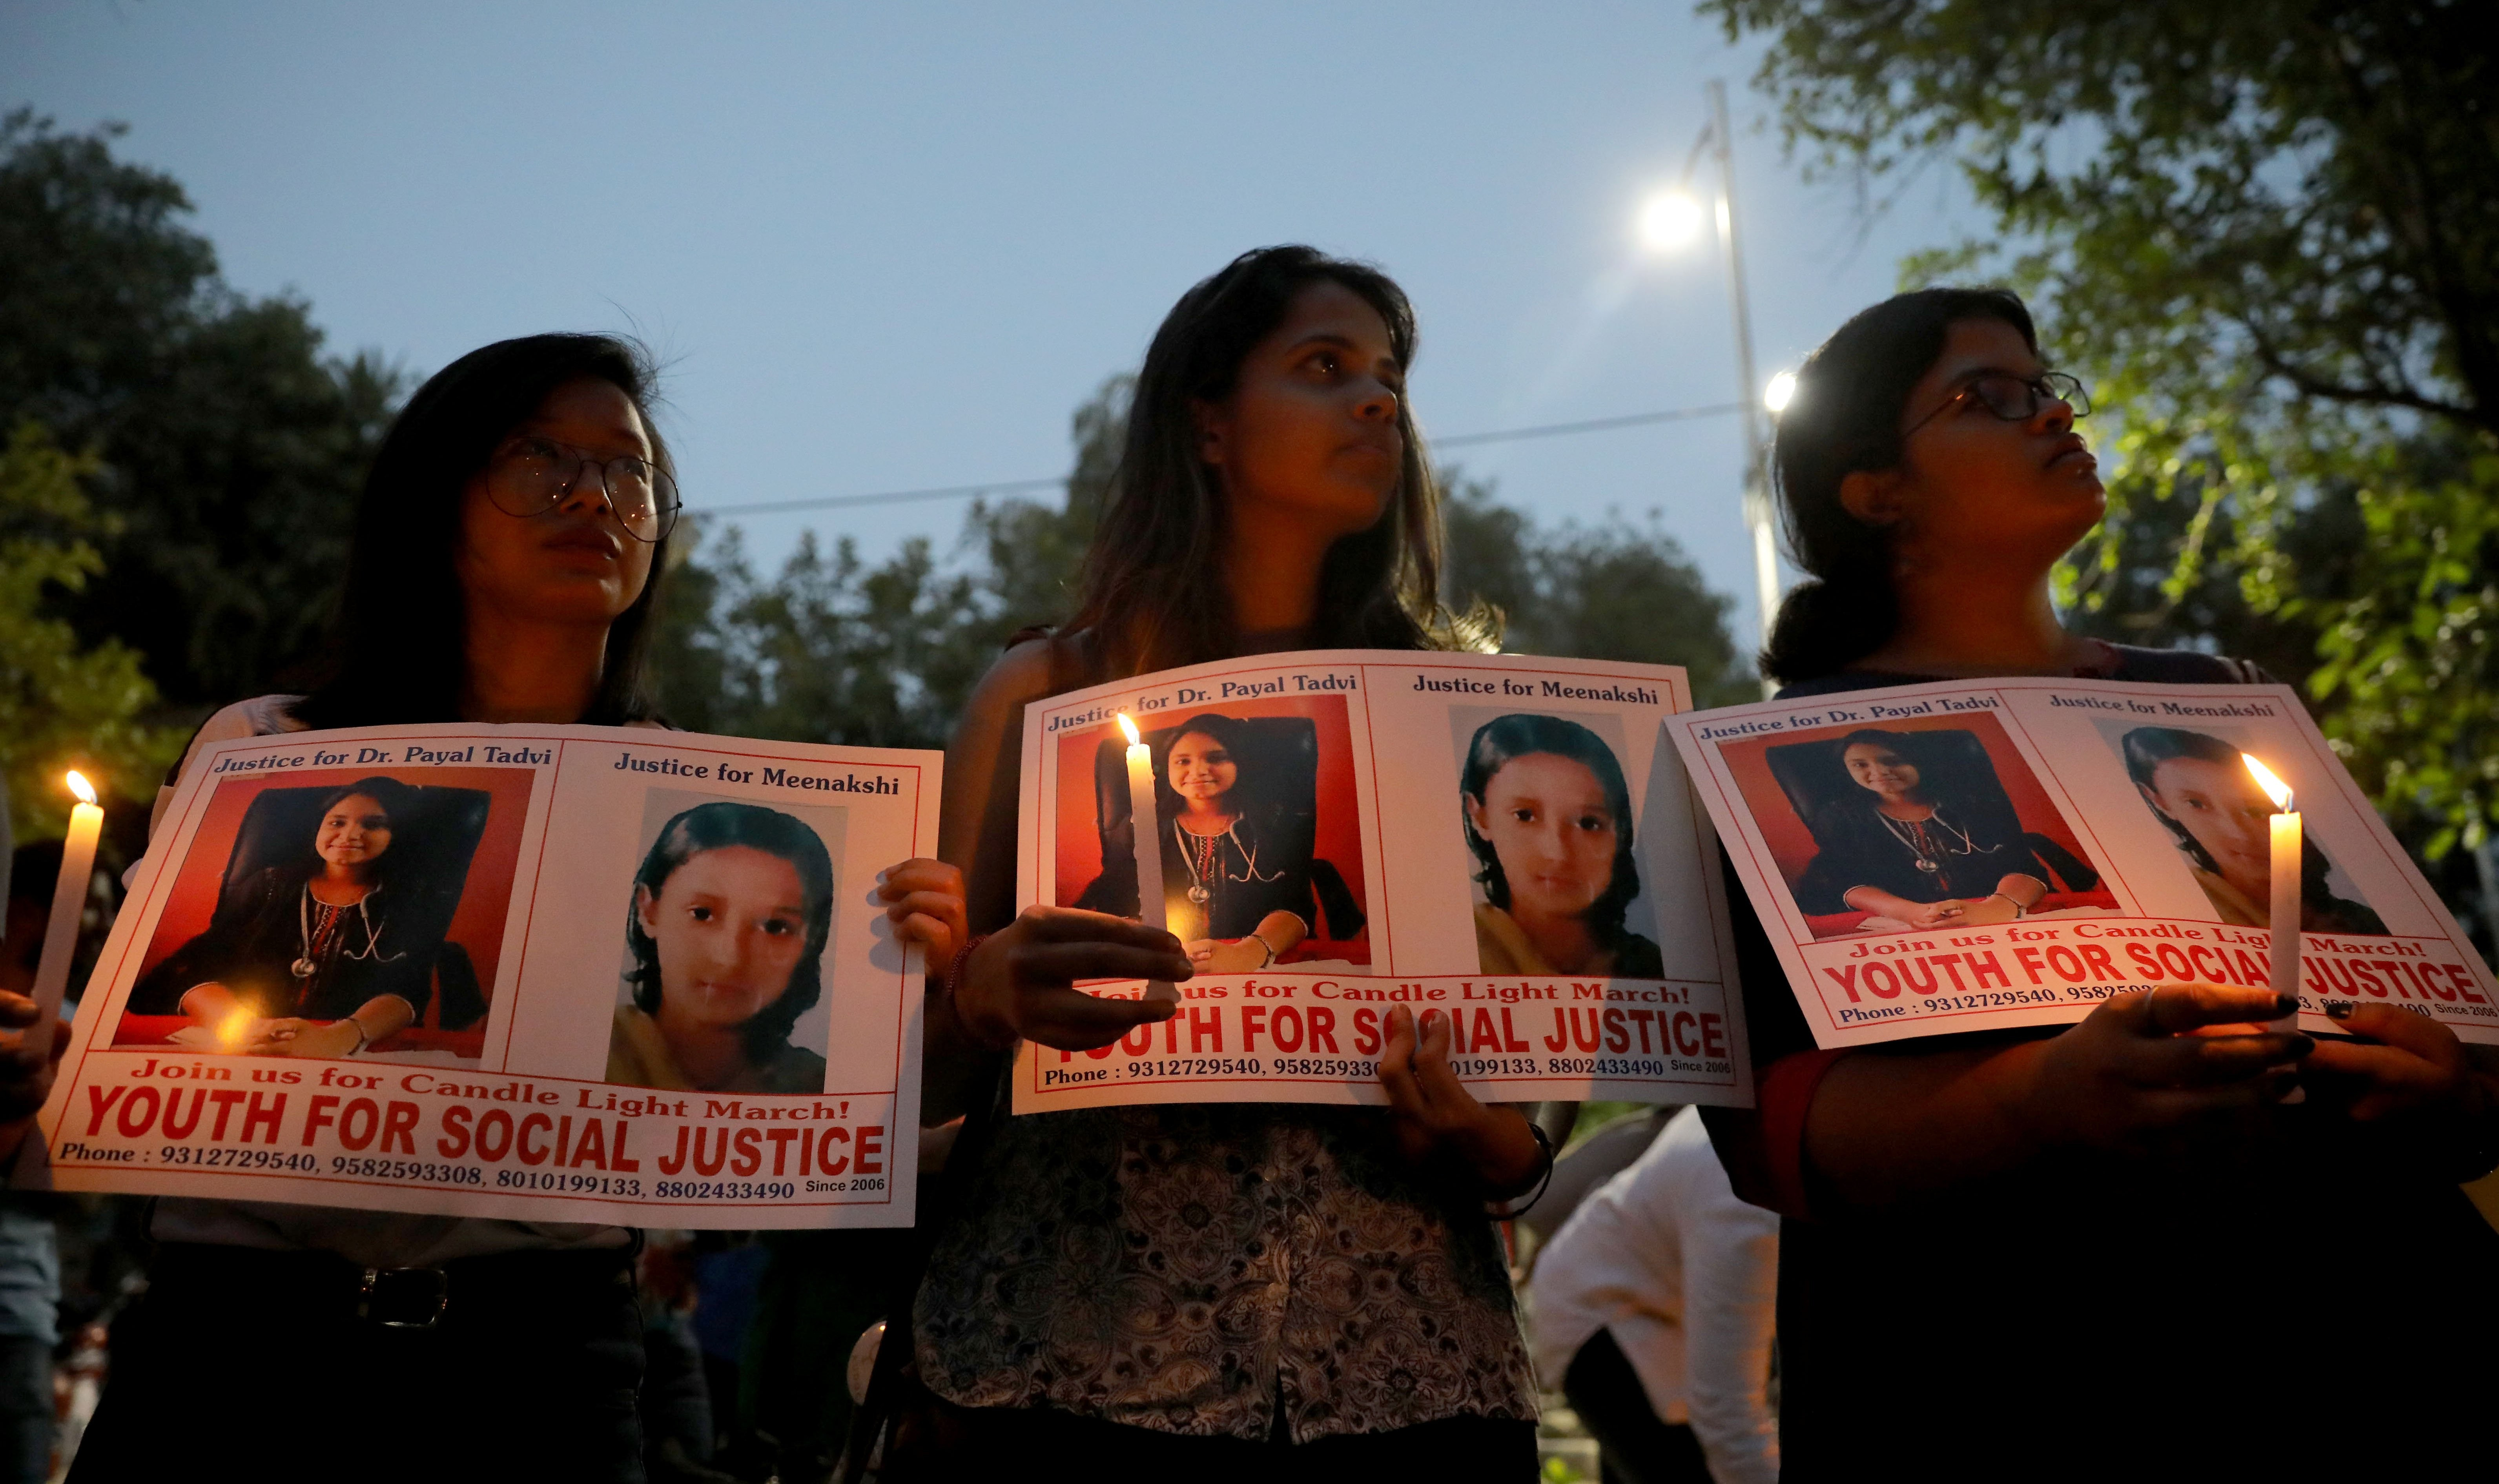 Mumbai cops suspect 'suicide note' of Dr Payal Tadvi was